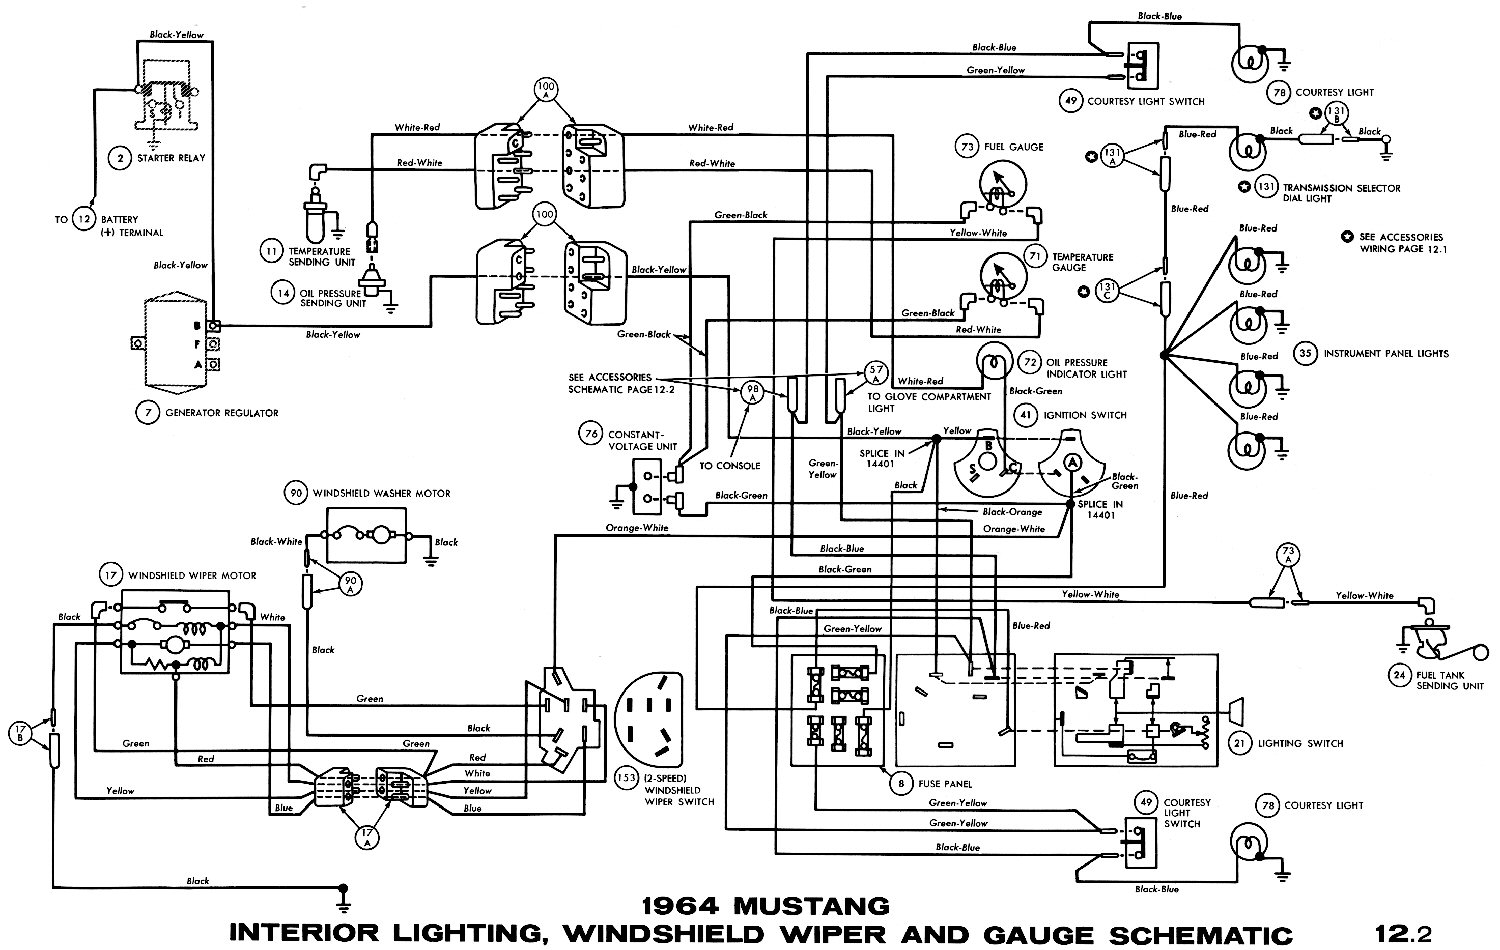 1964 Mustang Wiring Diagrams on 1973 mustang mach 1 wiring diagram